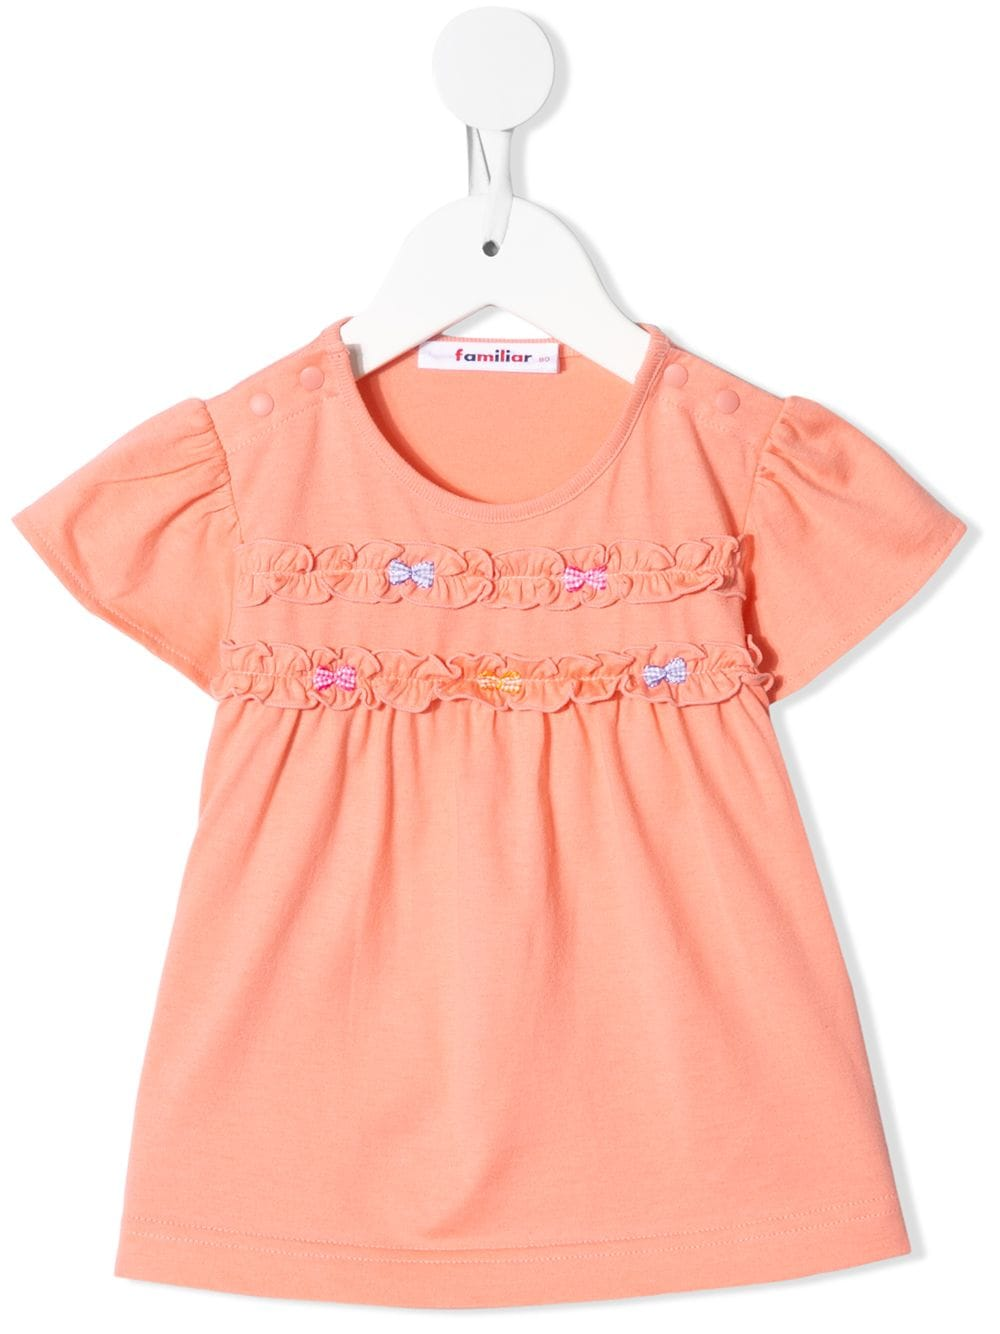 Familiar bow-detail ruffle top - Pink von Familiar